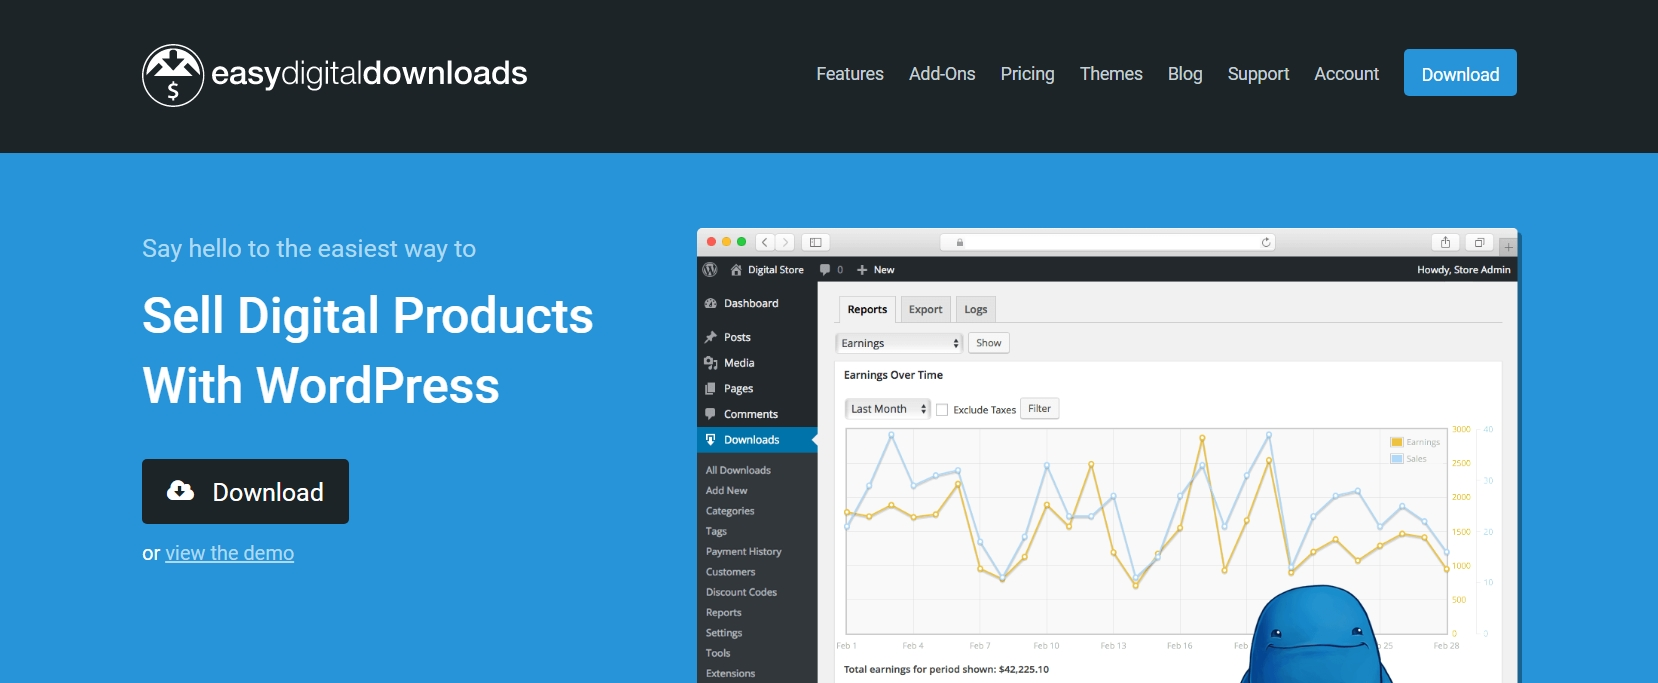 Easy Digital Downloads Review: Sell Digital Products on WordPress